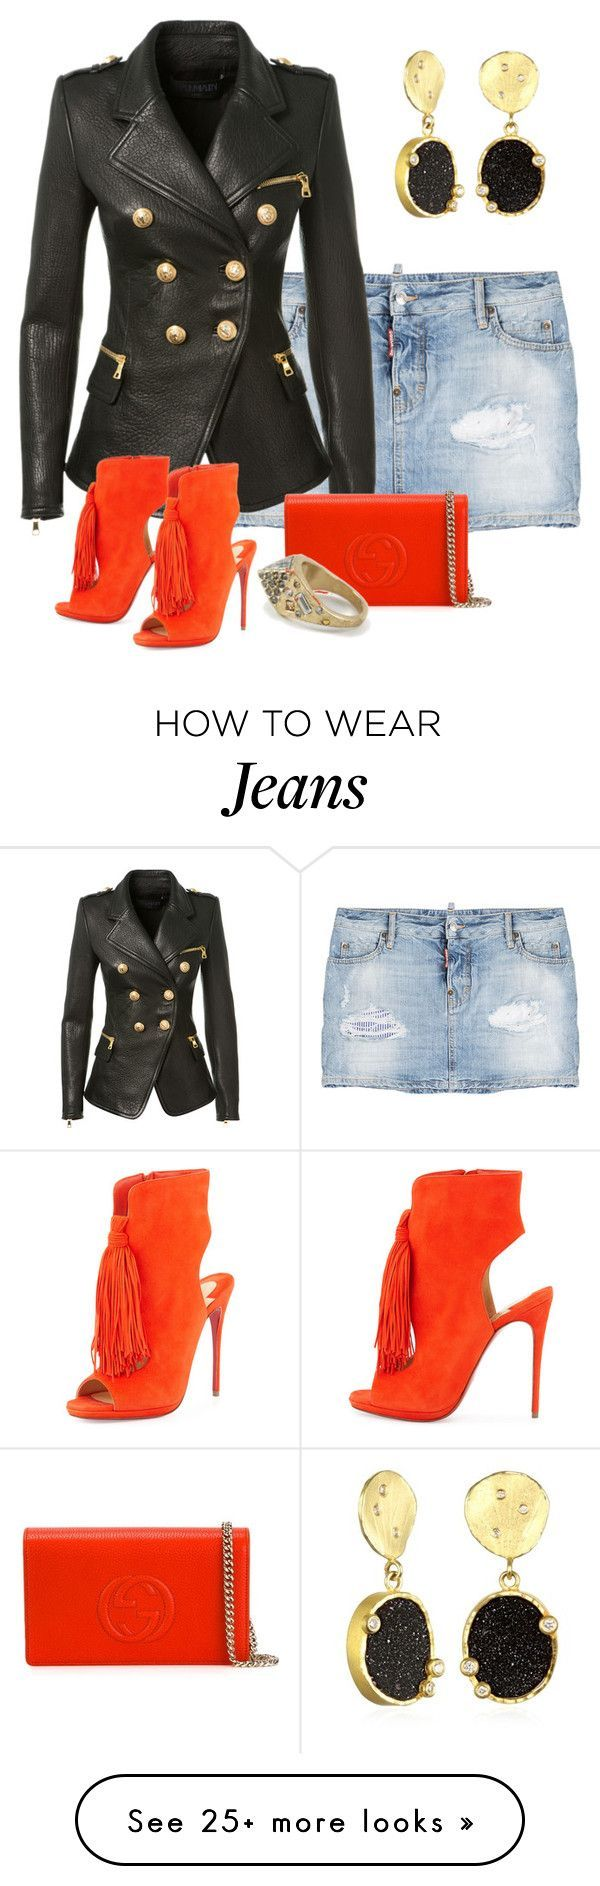 Untitled #2021 by anfernee-131 on Polyvore featuring Dsquared2, Balmain, Christian Louboutin, Gucci, women's clothing, women's fashion, women, female, woman and misses Clothing, Shoes & Jewelry - Women - women's jeans - http://amzn.to/2jzIjoE